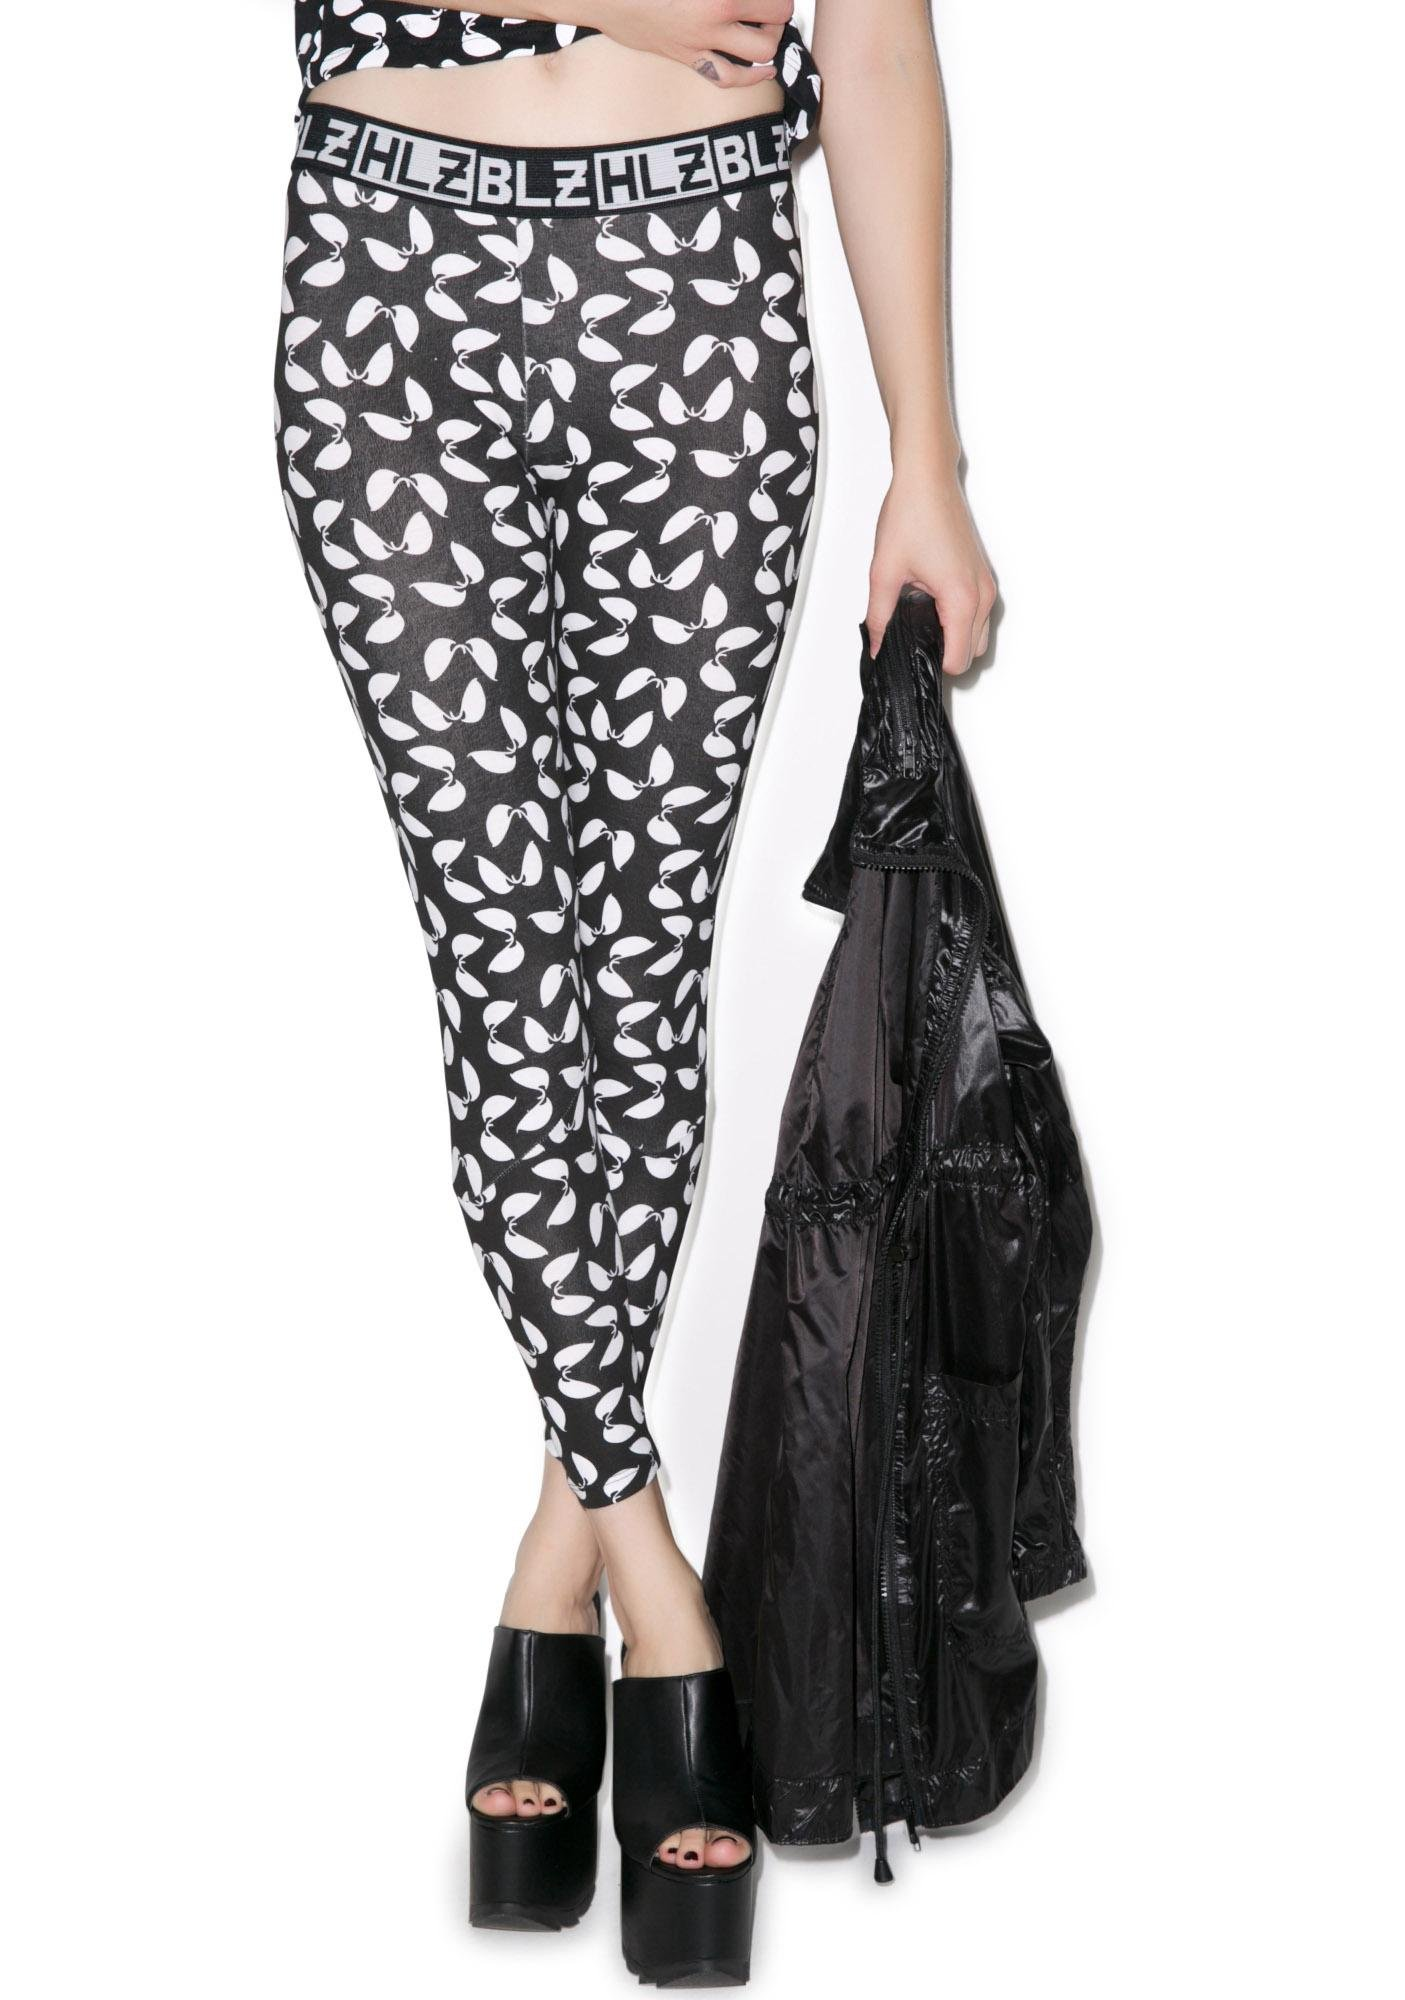 HLZBLZ Martian Eyes Leggings